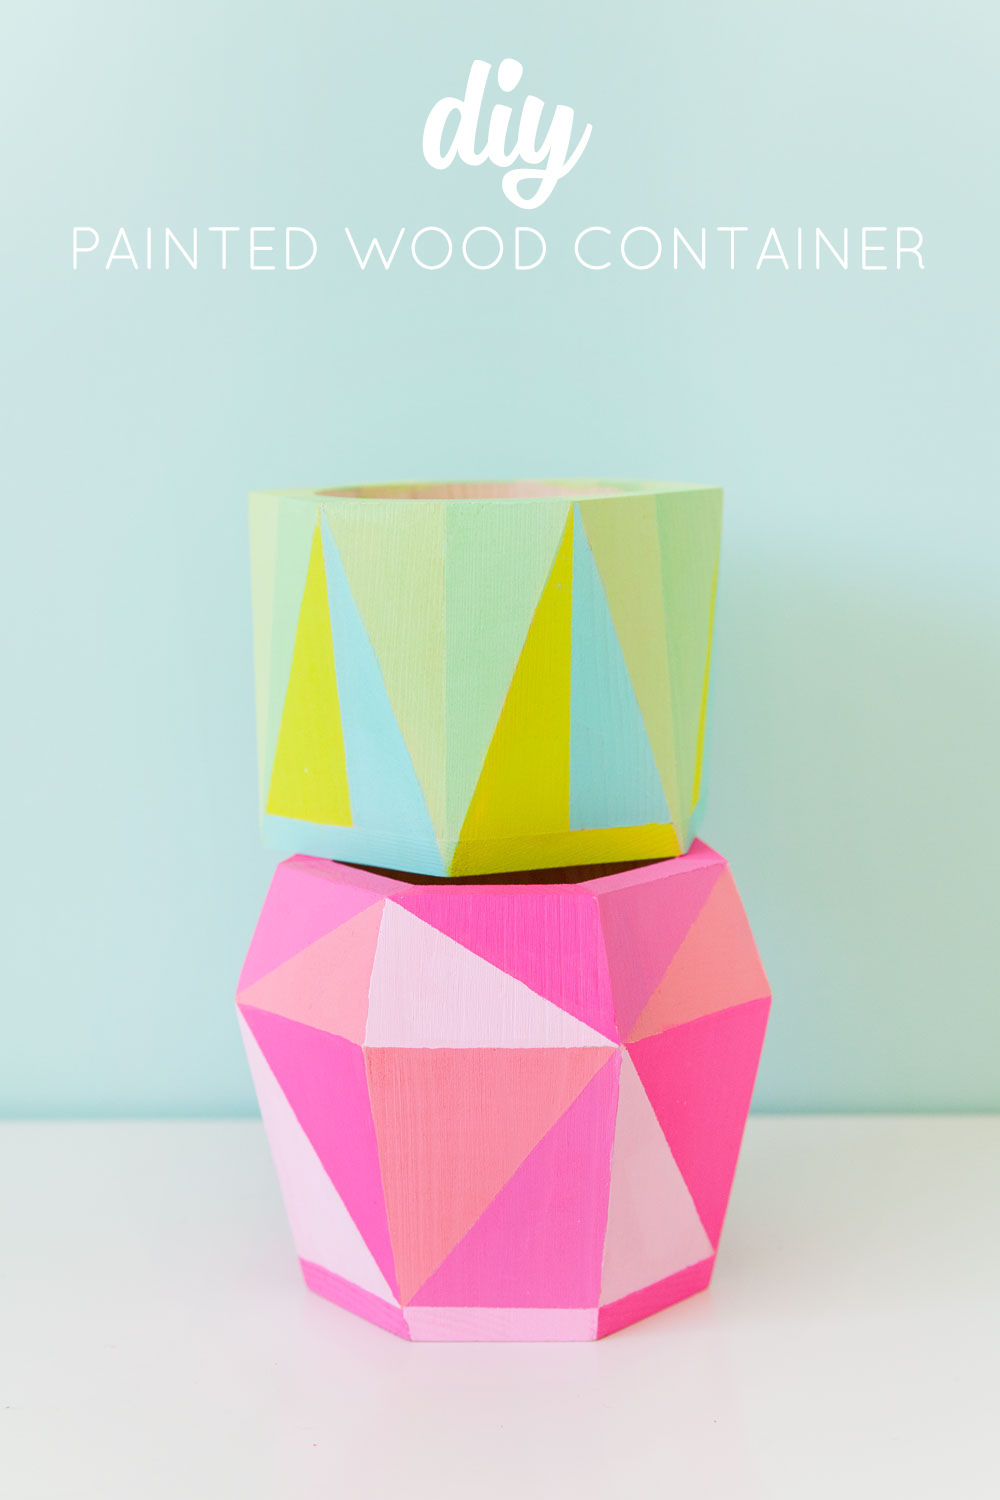 Painted wood containers